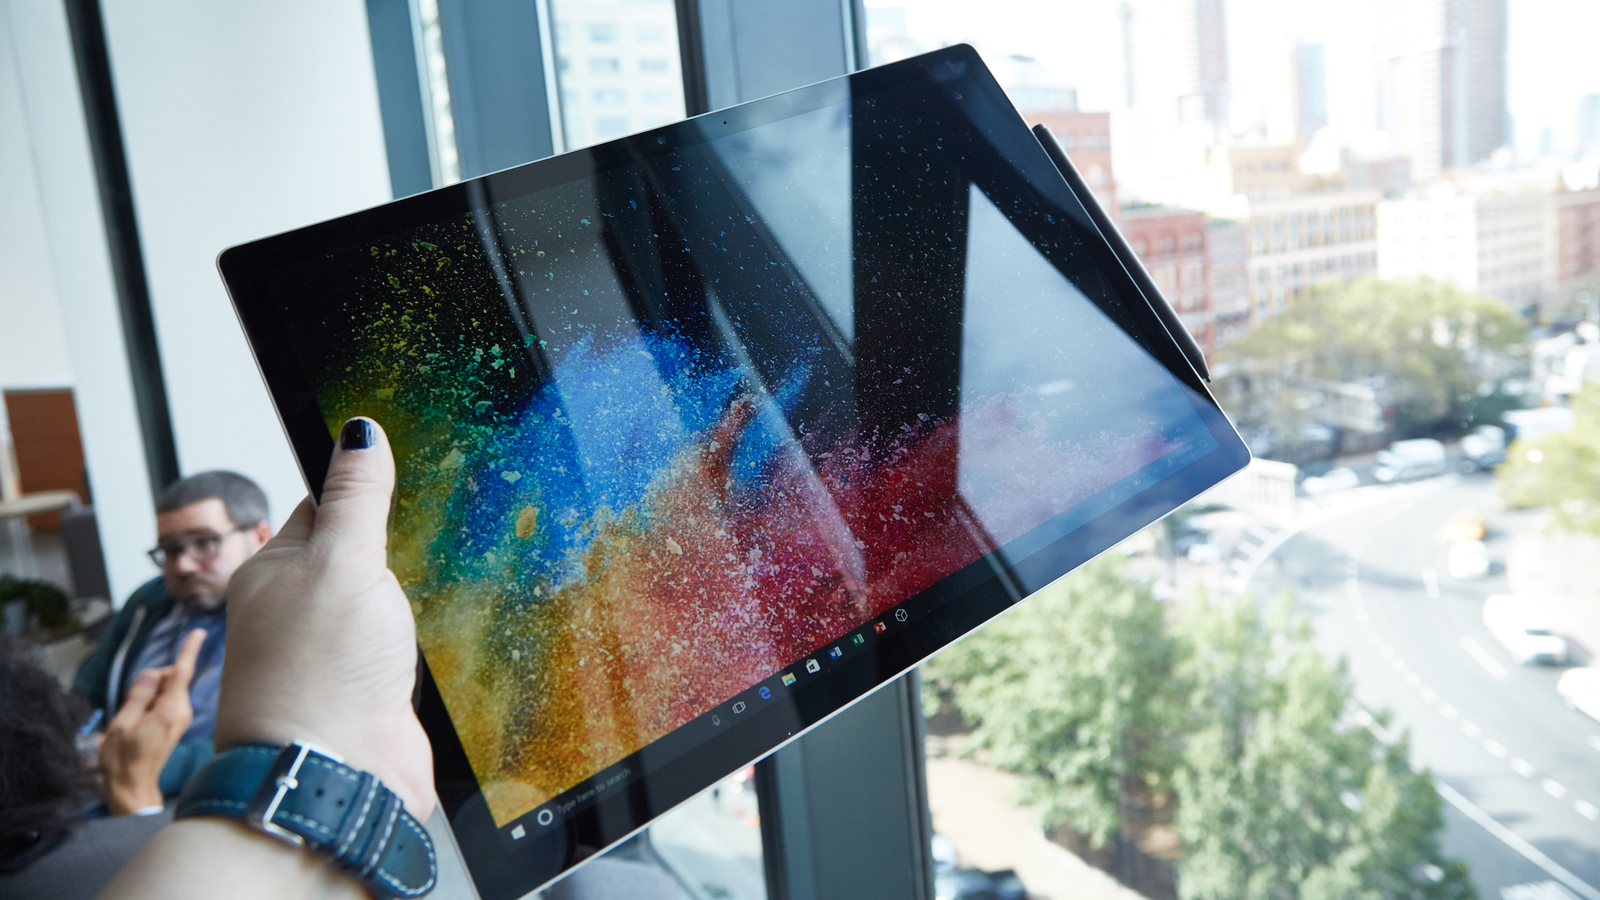 The 3000 x 2000 display on the 13.5-inch and the 3240 x 2160 display on the 15-inch are real pretty.